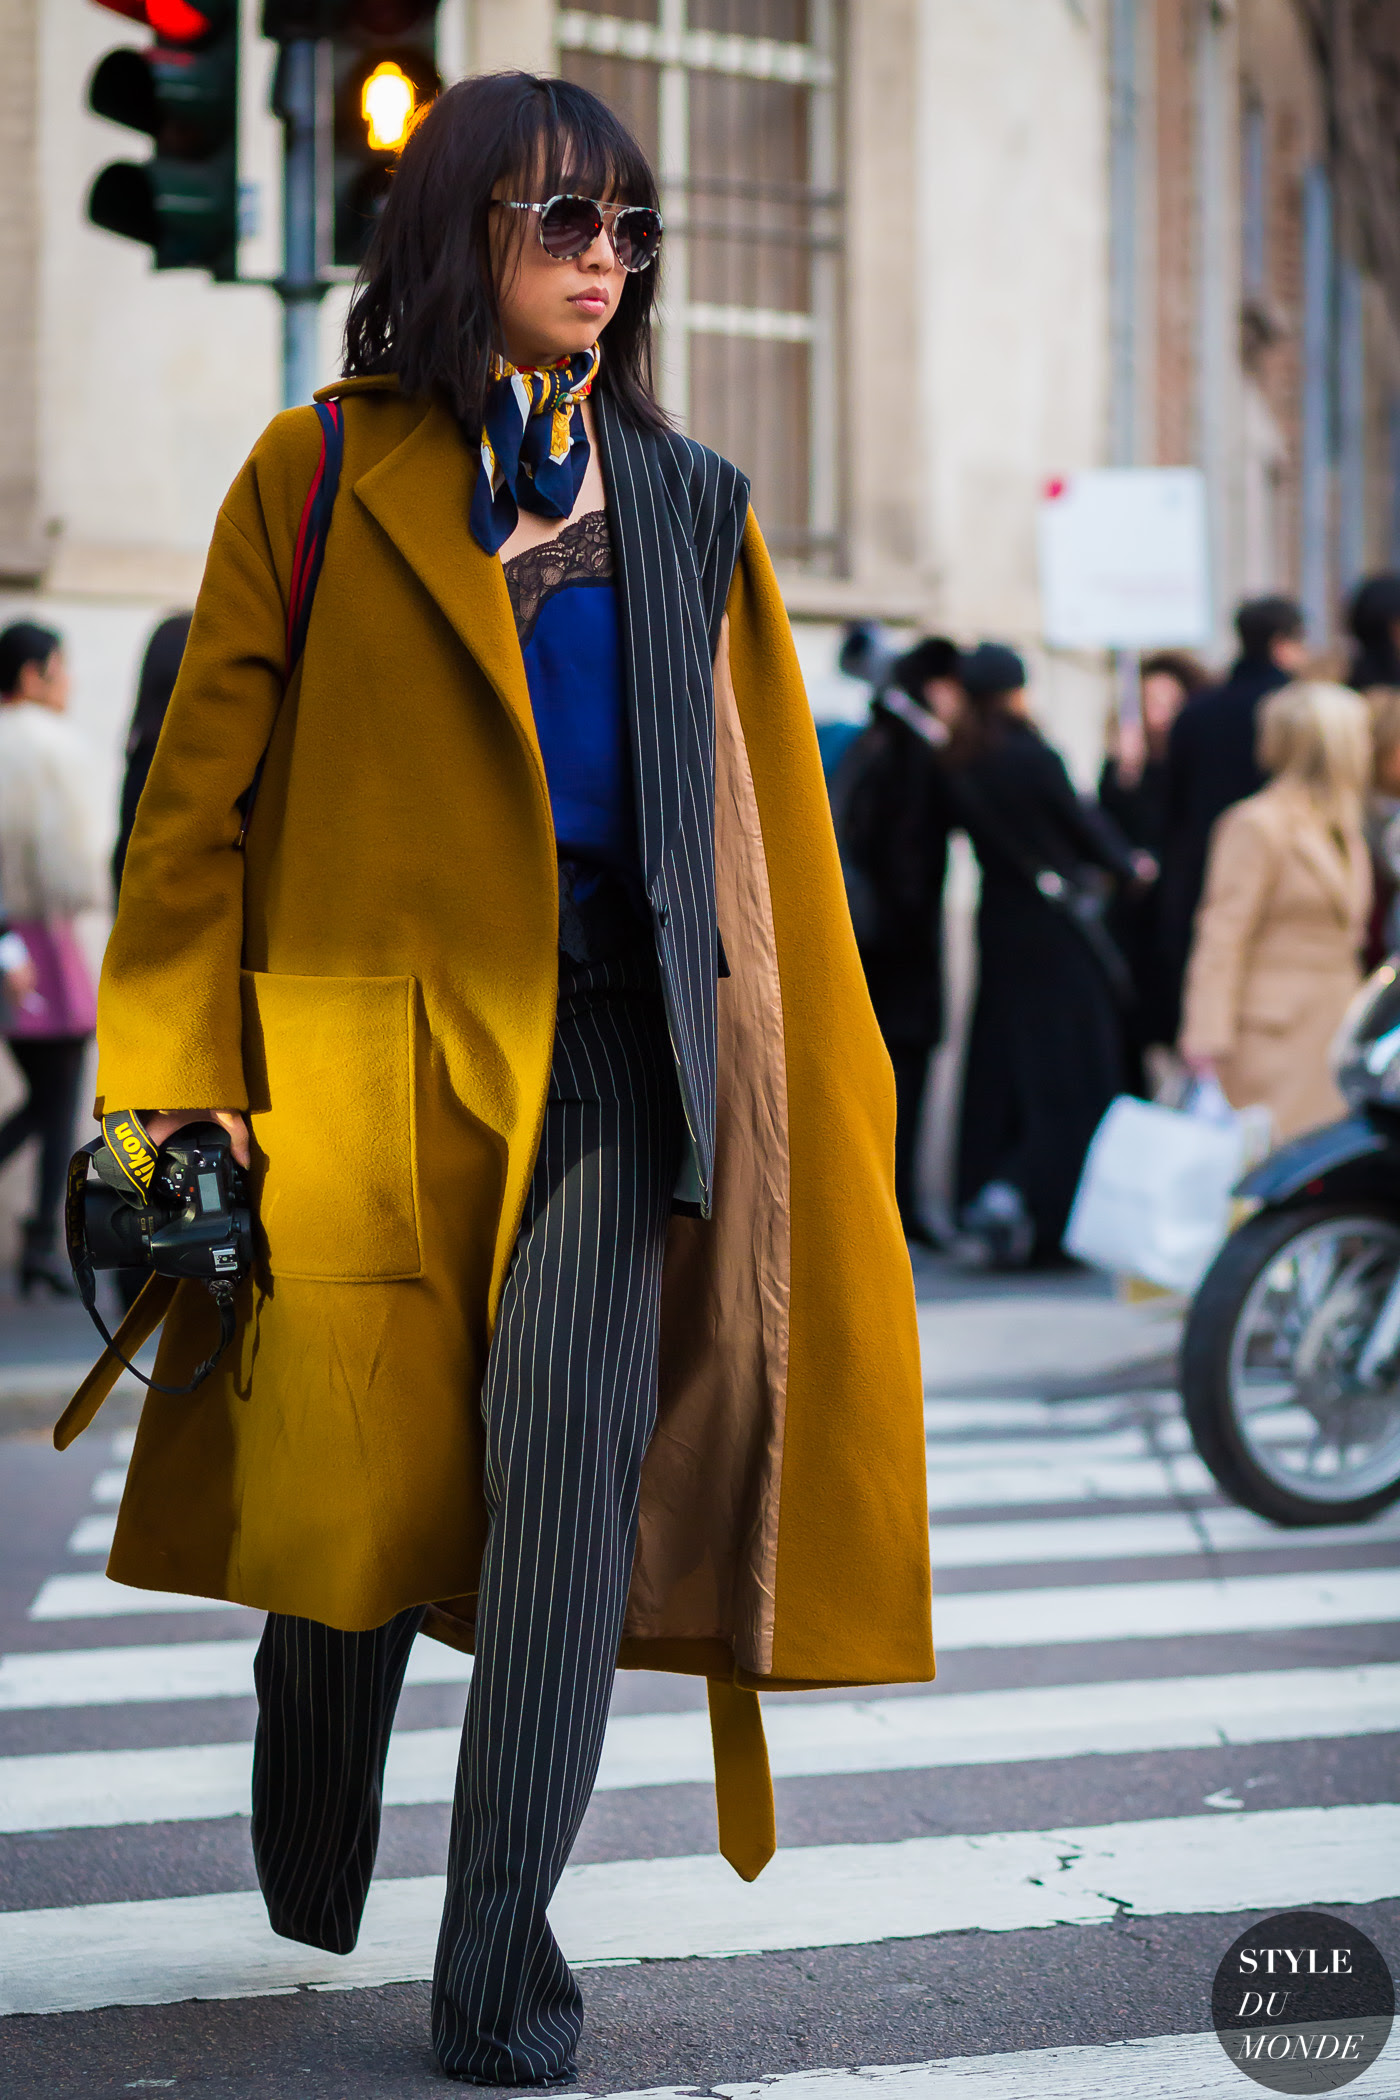 http://www.styledumonde.com/wp-content/uploads/2017/01/Margaret-Zhang-by-STYLEDUMONDE-Street-Style-Fashion-Photography0E2A6253-700x1050@2x.jpg